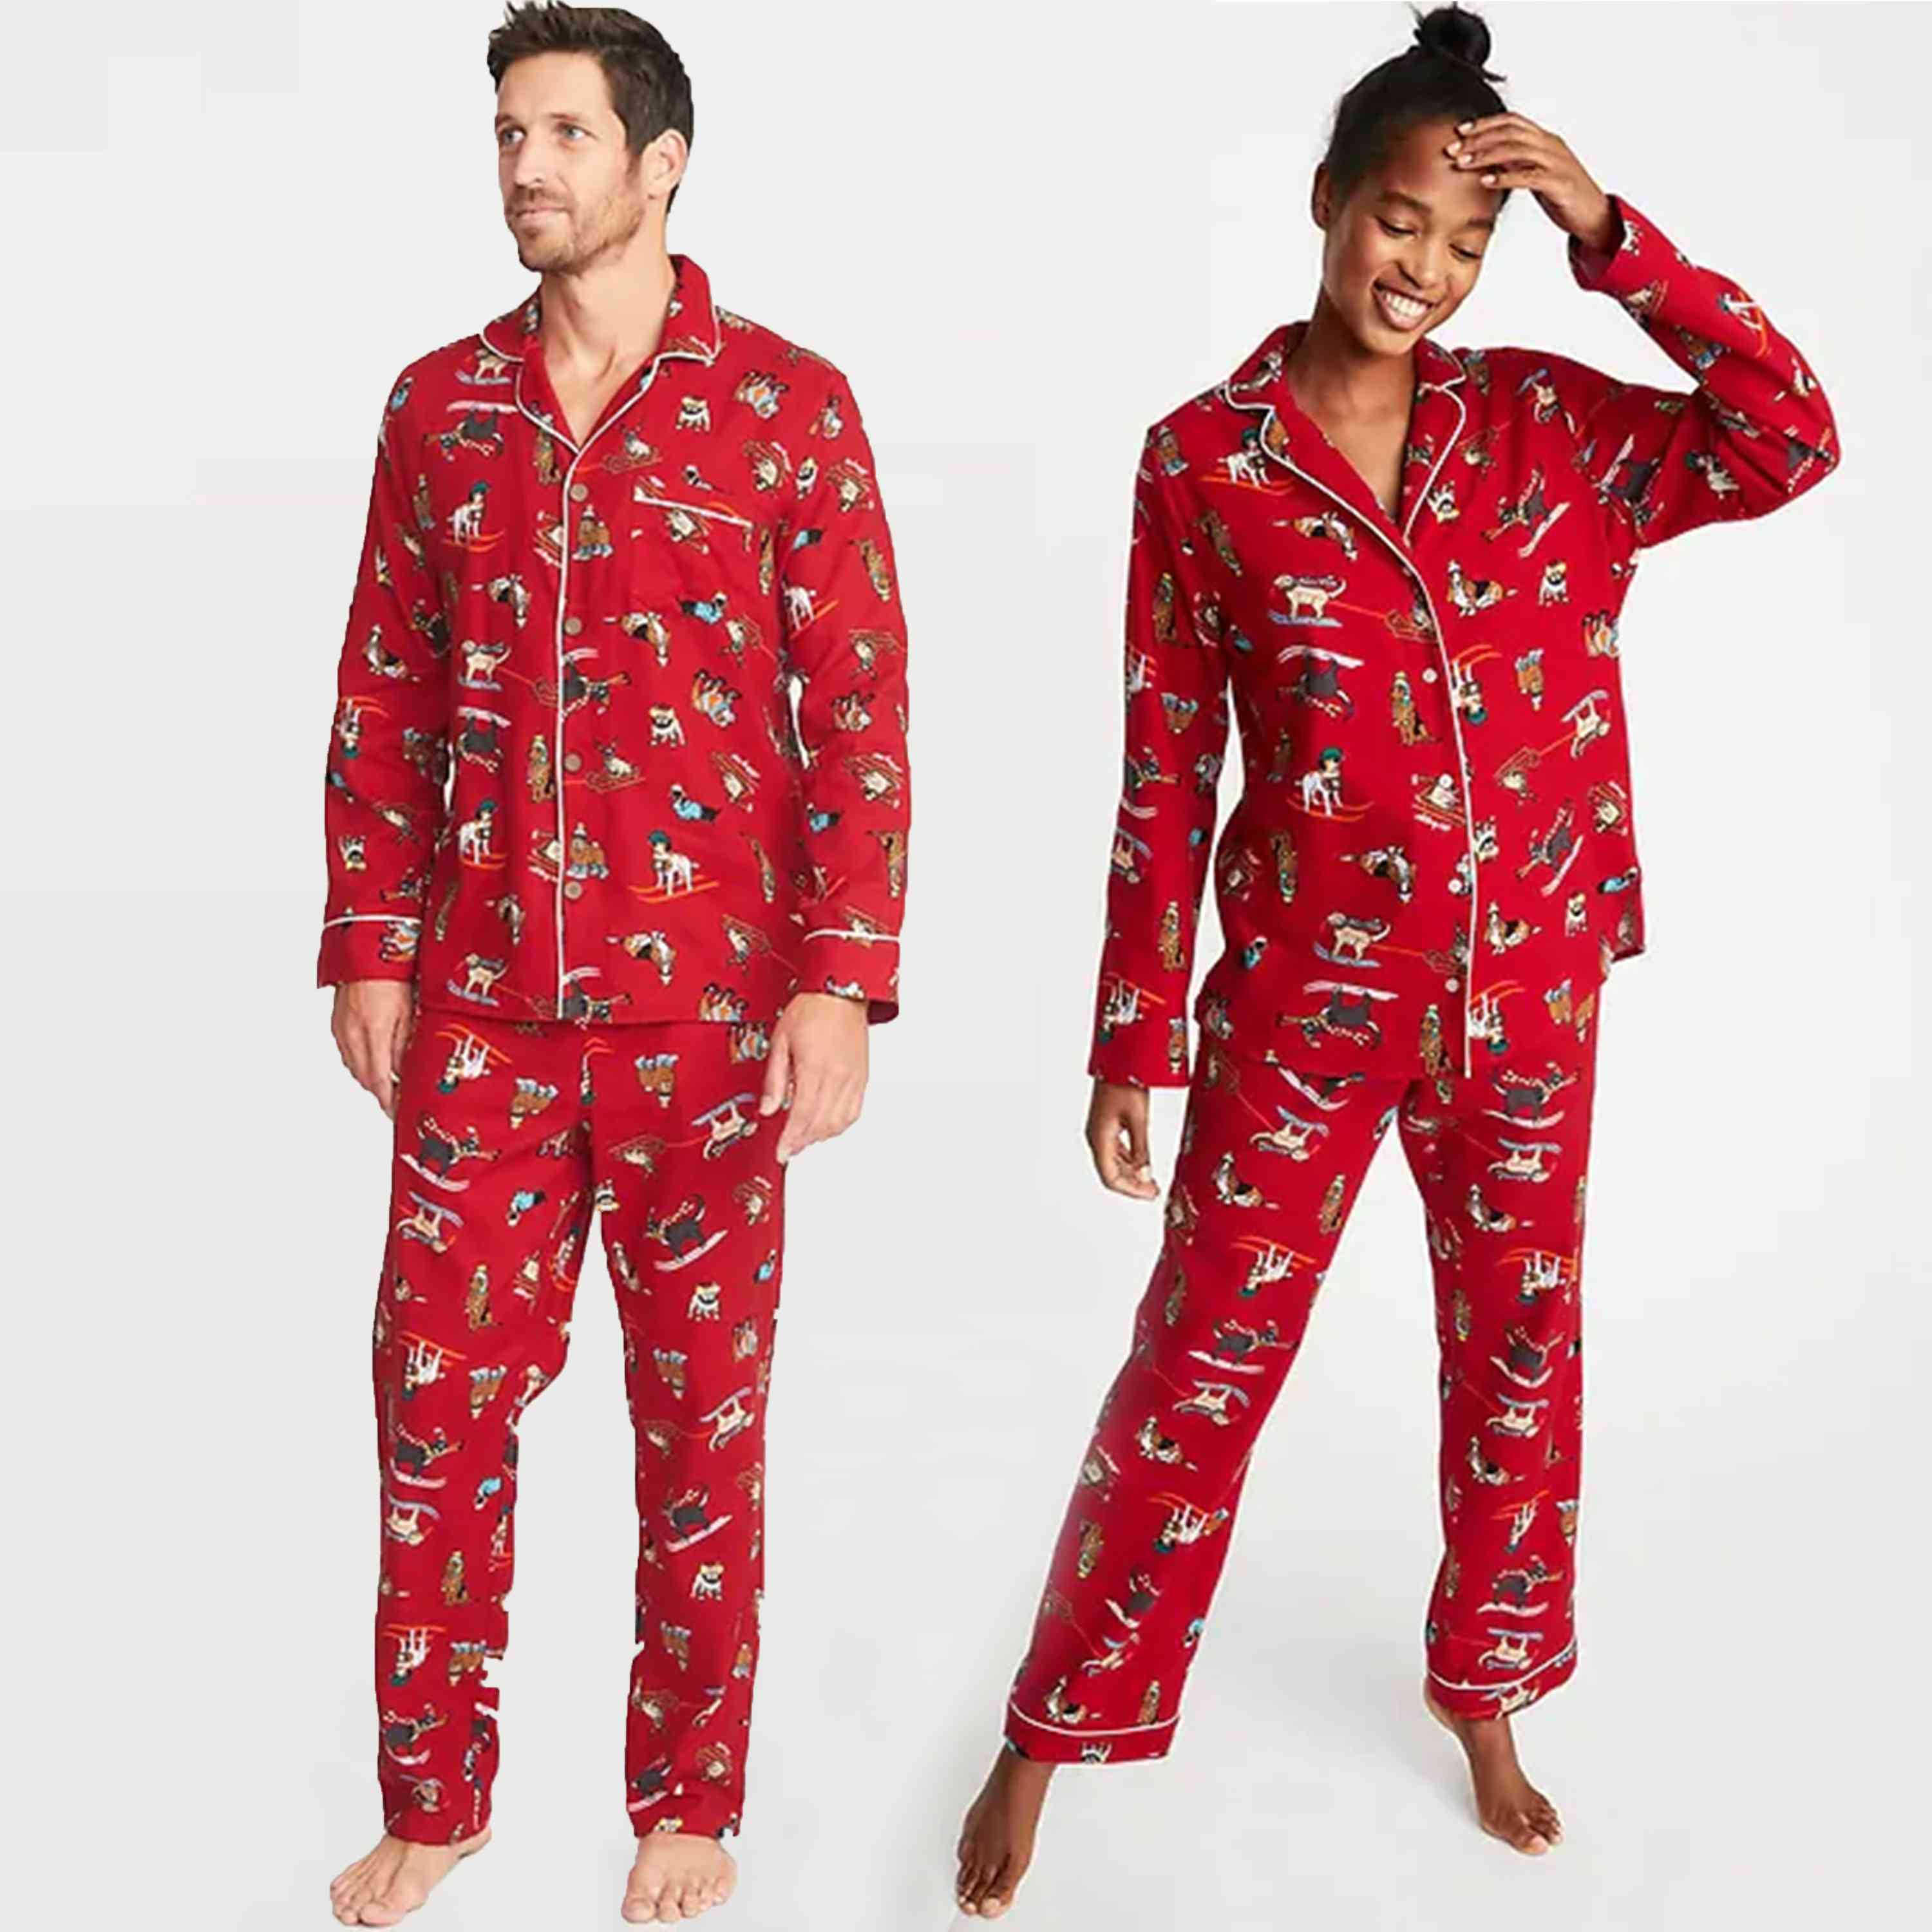 Image result for matching couple pajamas